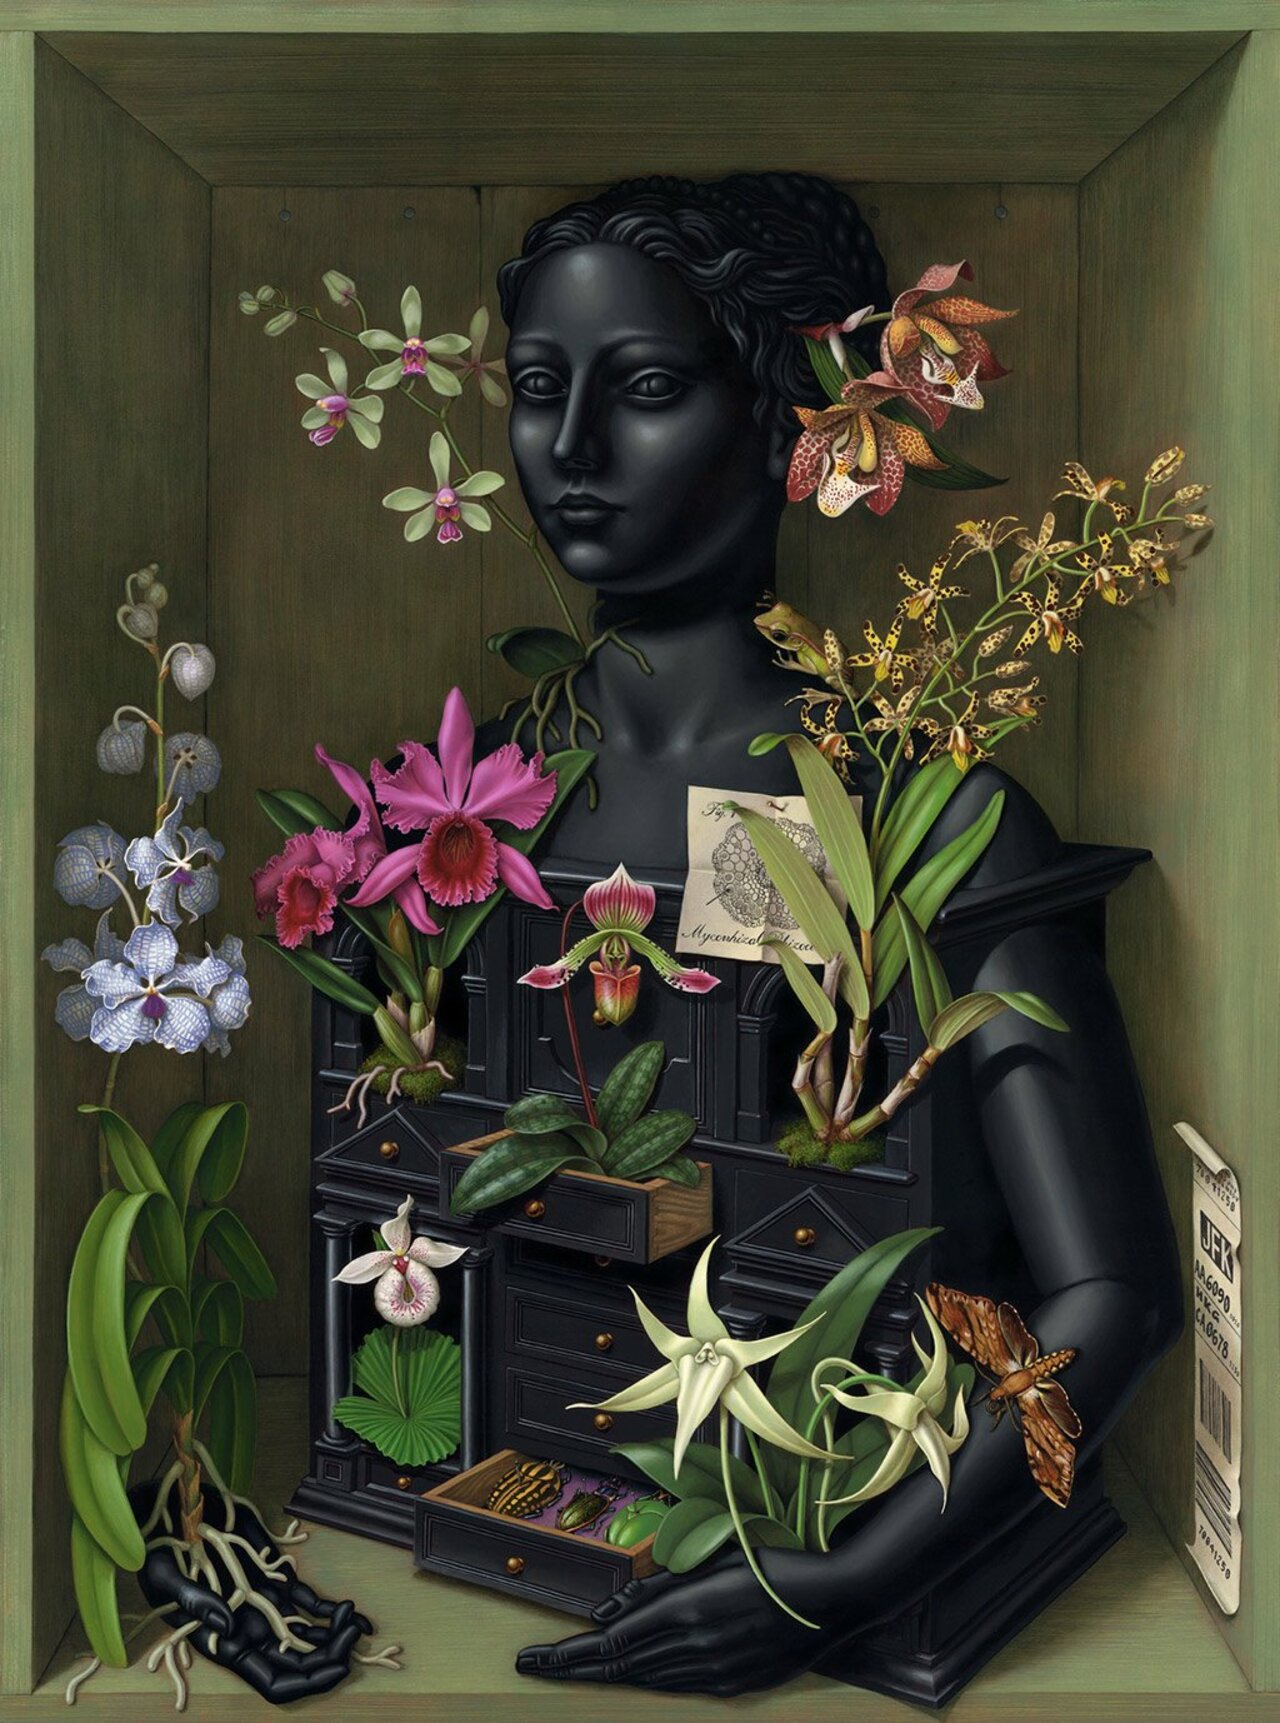 RT @ClaudMang: Orchid CabinetMadeline von Foerster (b.1973)American Artist based in Cologne https://t.co/F1aWXeo4AL